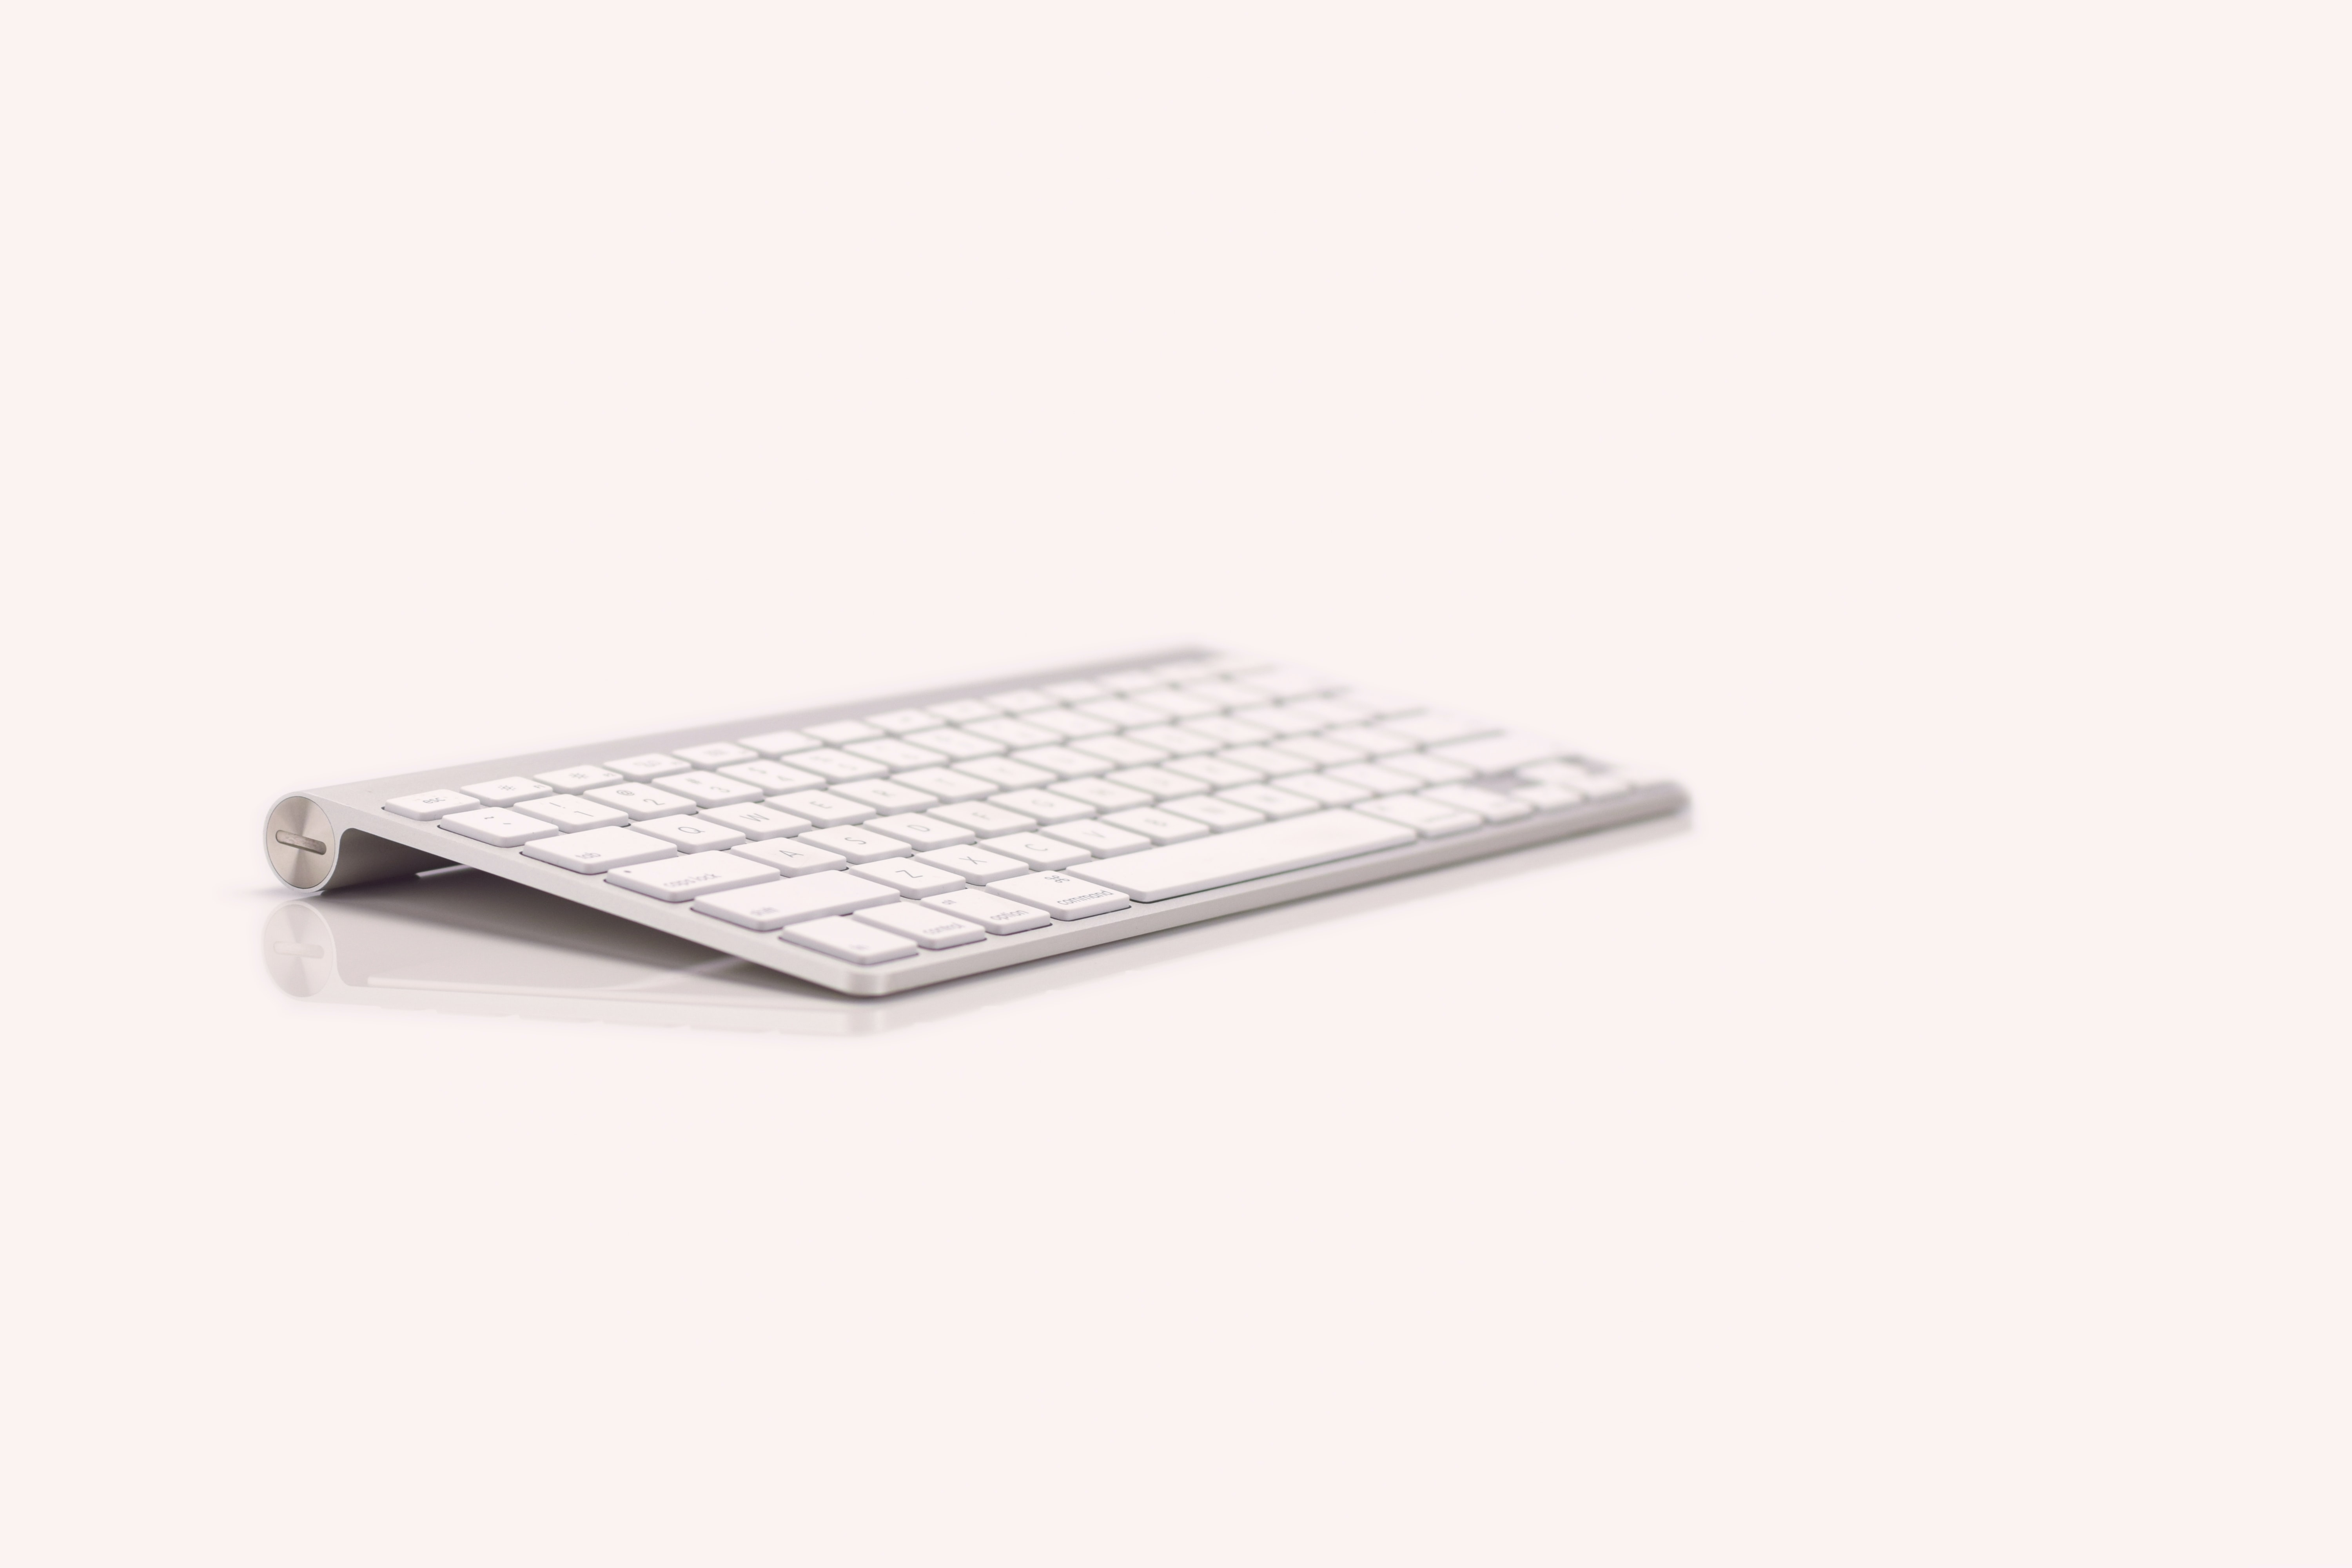 Apple wireless keyboard 1 against white background